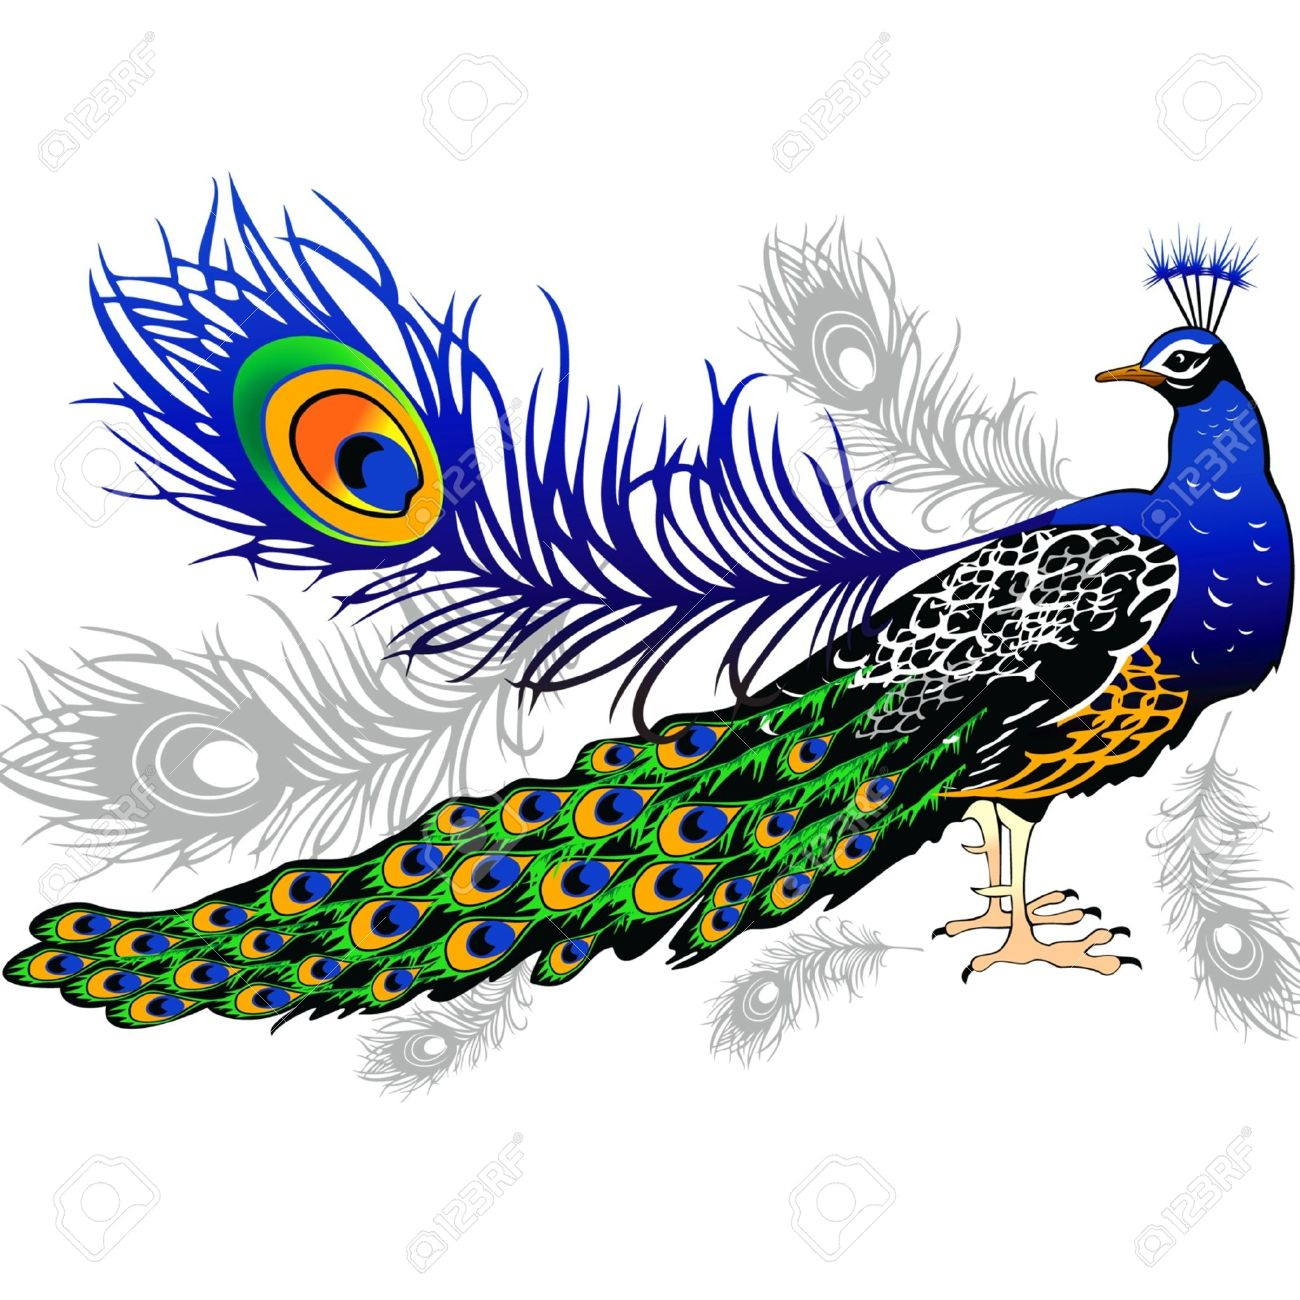 male peacock feathers on the background royalty free cliparts